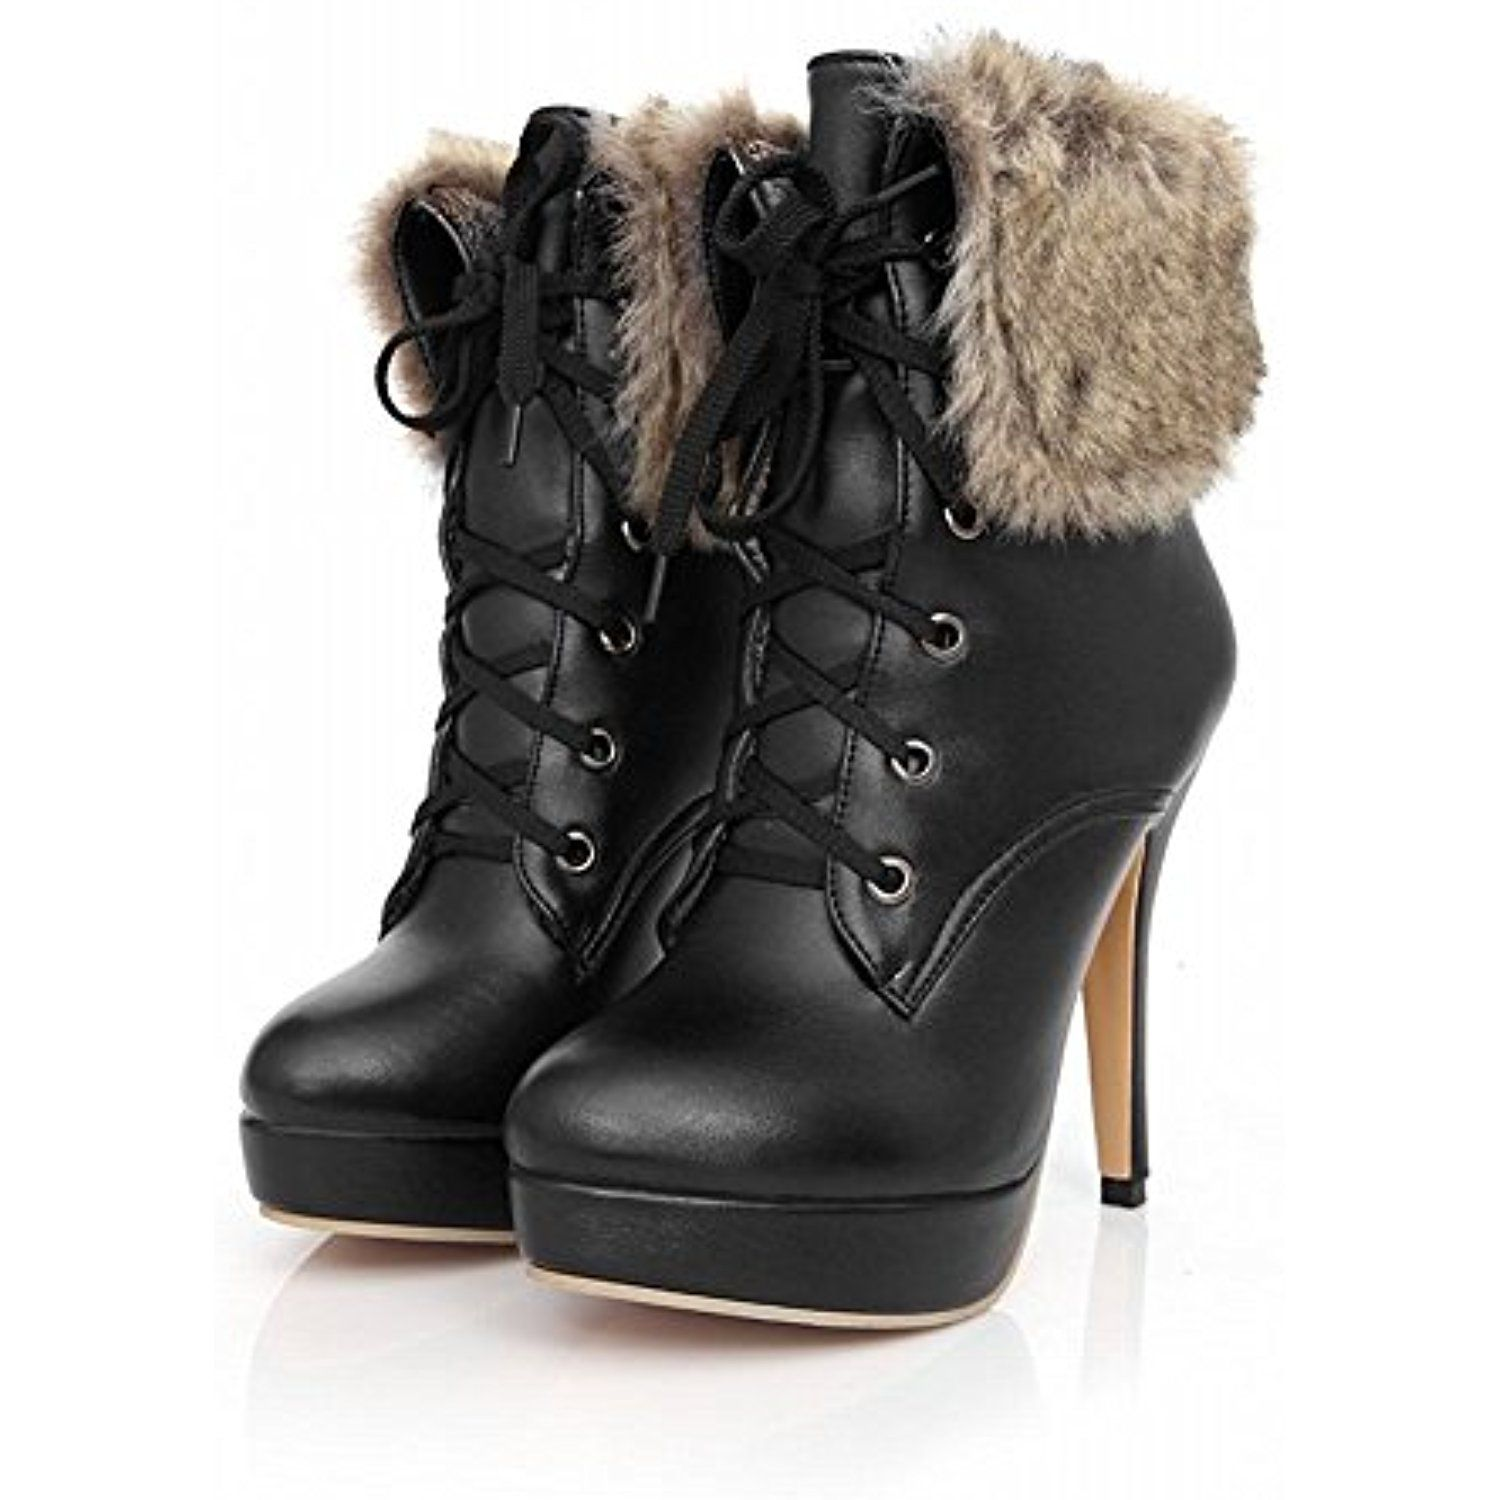 Women's Fashion Ankle-high High-heel Stiletto Lace-up Snow Boots Faux-fur Decoration